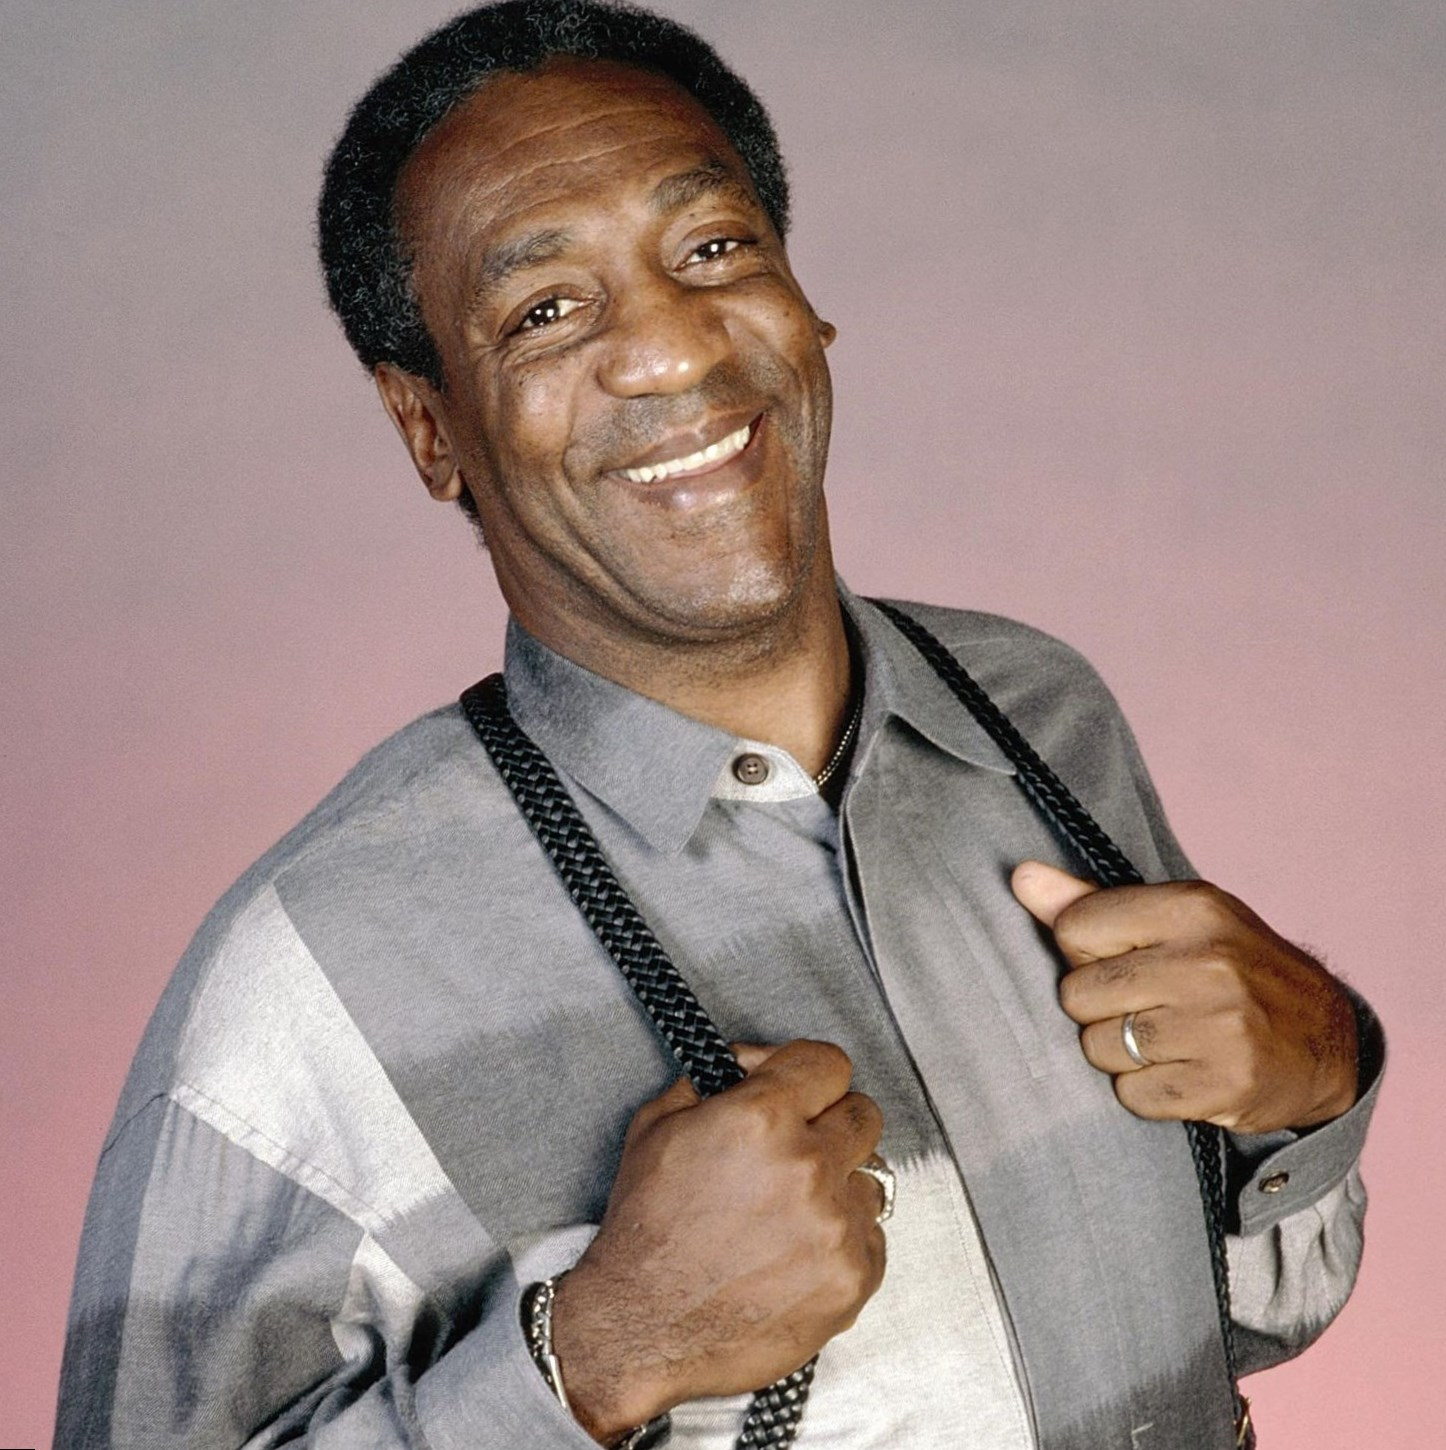 How Tall Is Bill Cosby